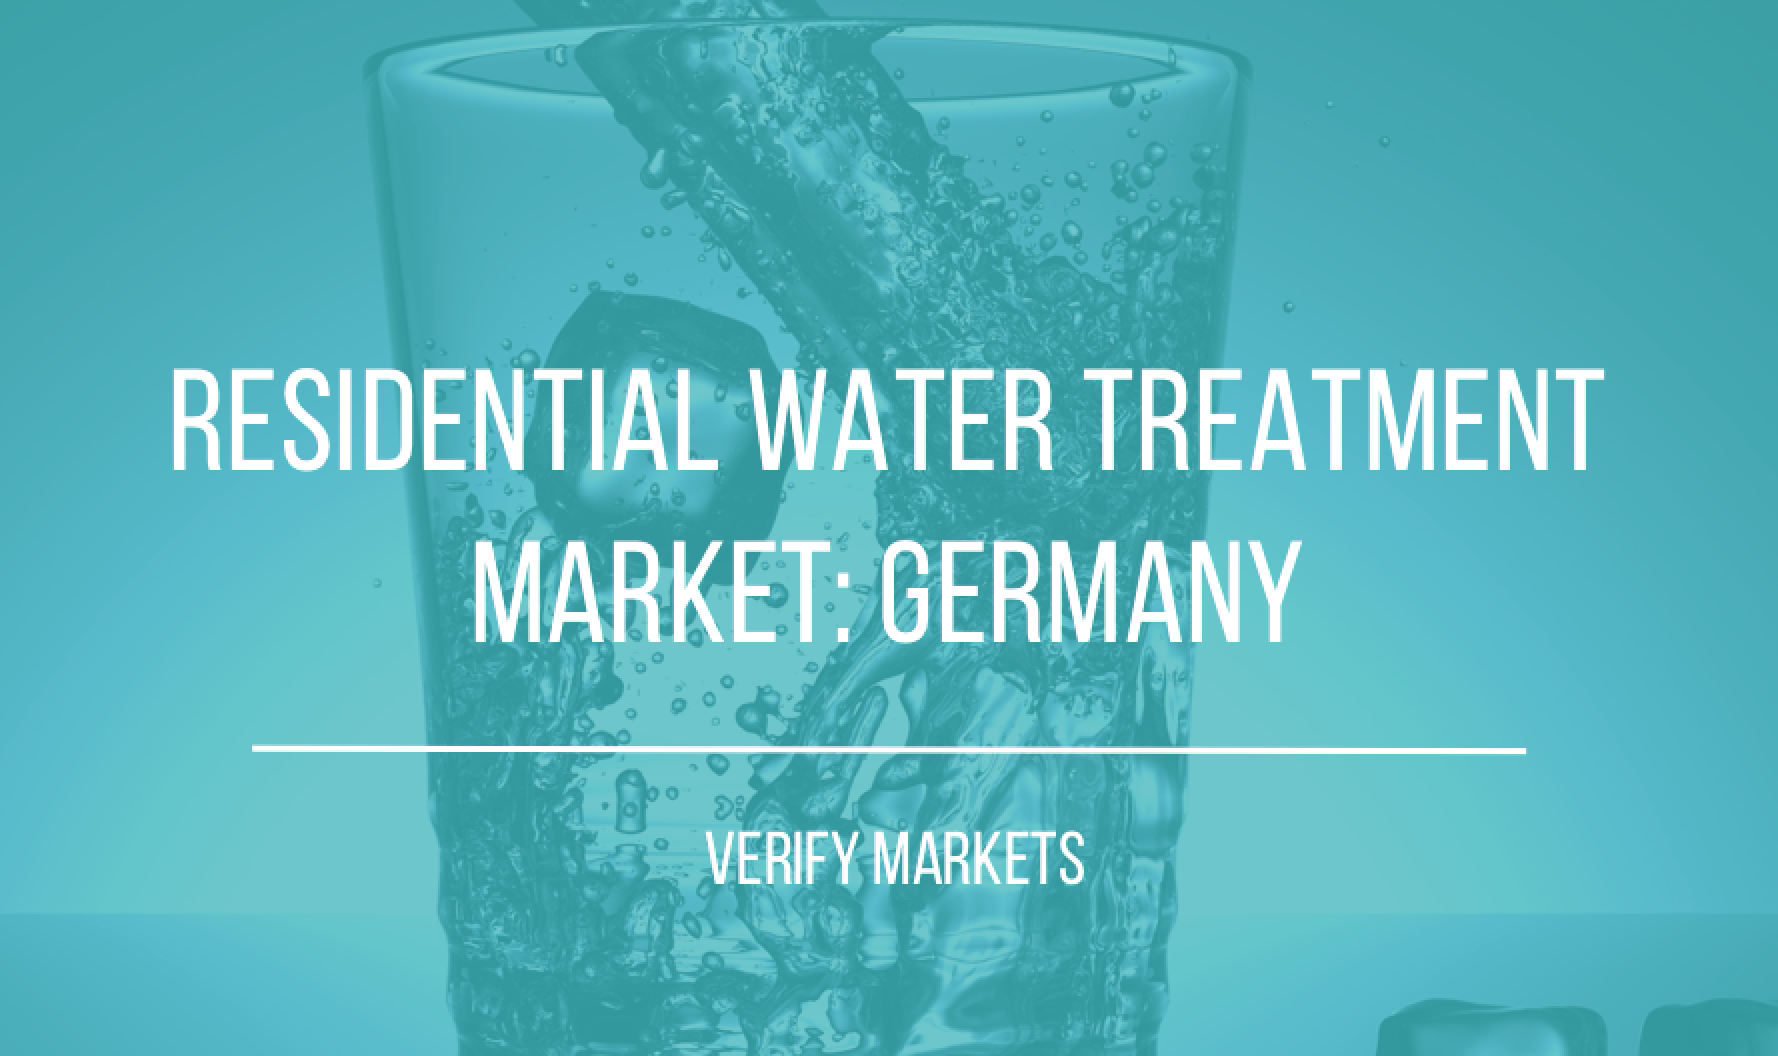 2017 RESIDENTIAL WATER TREATMENT MARKET: GERMANY